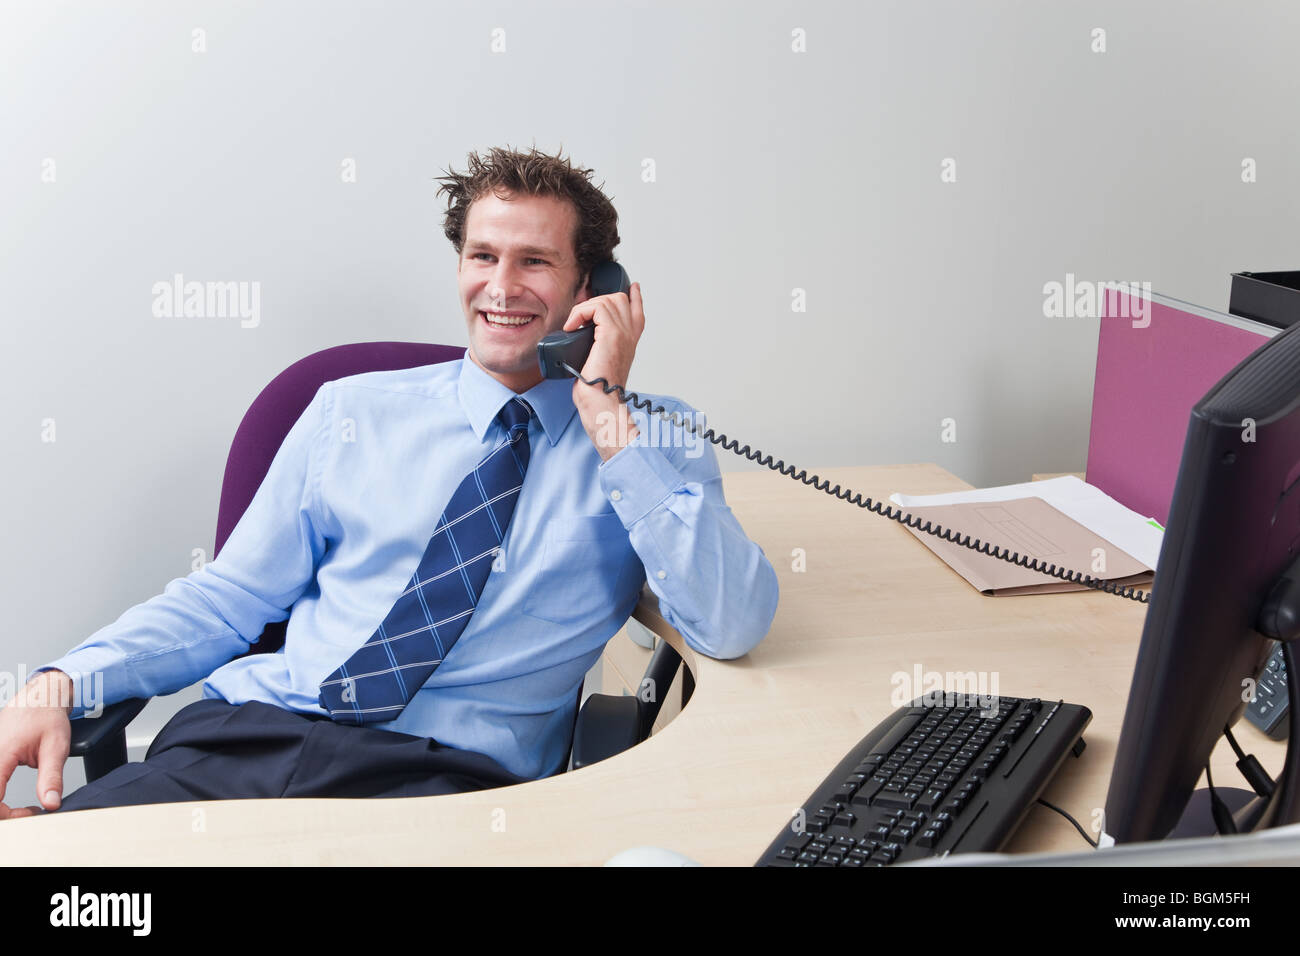 A businessman wearing shirt and tie sat at his desk chatting on the telephone. - Stock Image